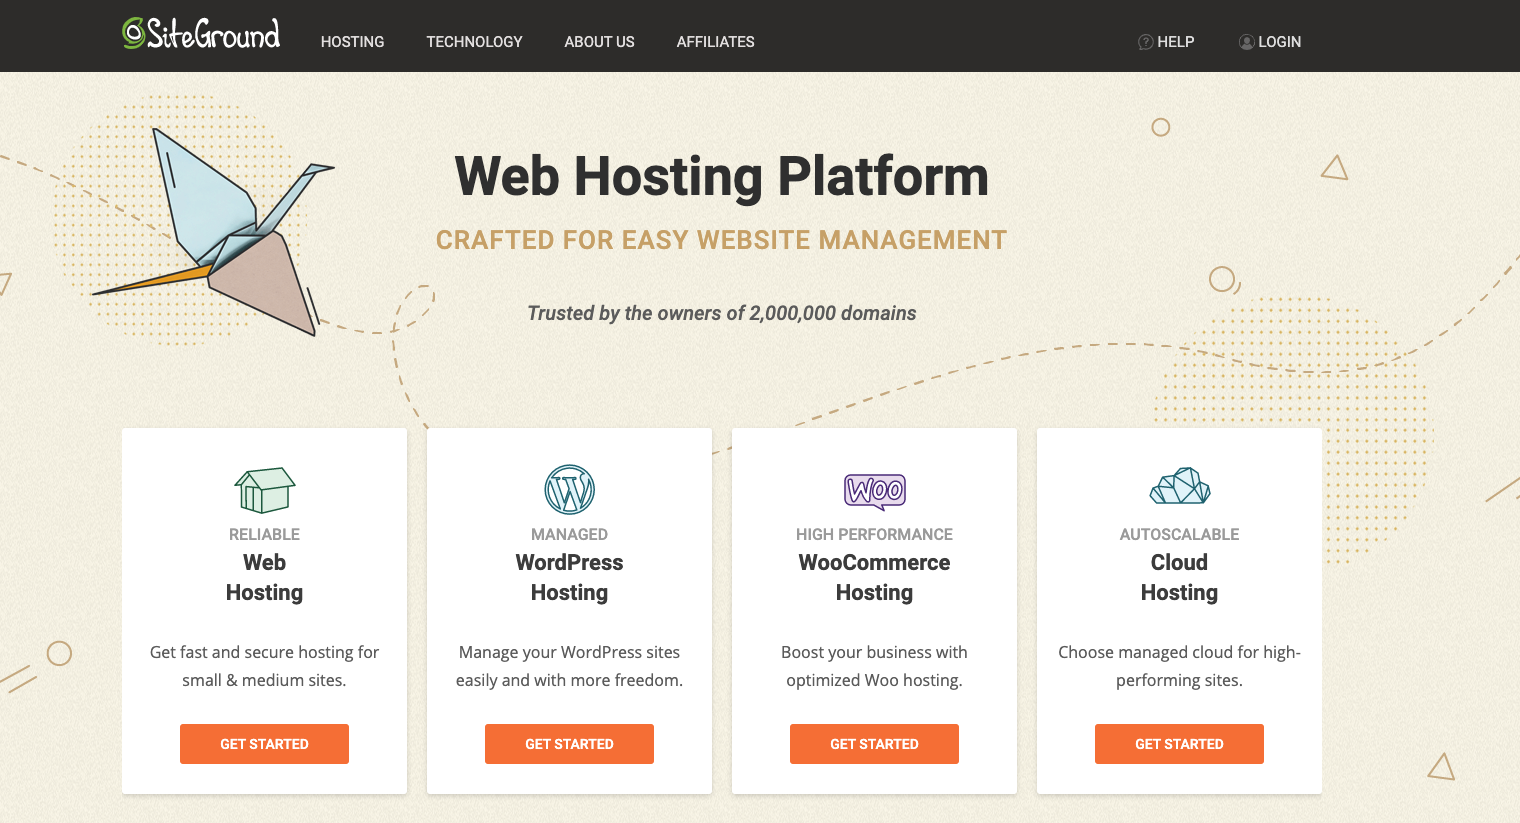 SiteGround website with hosting packages